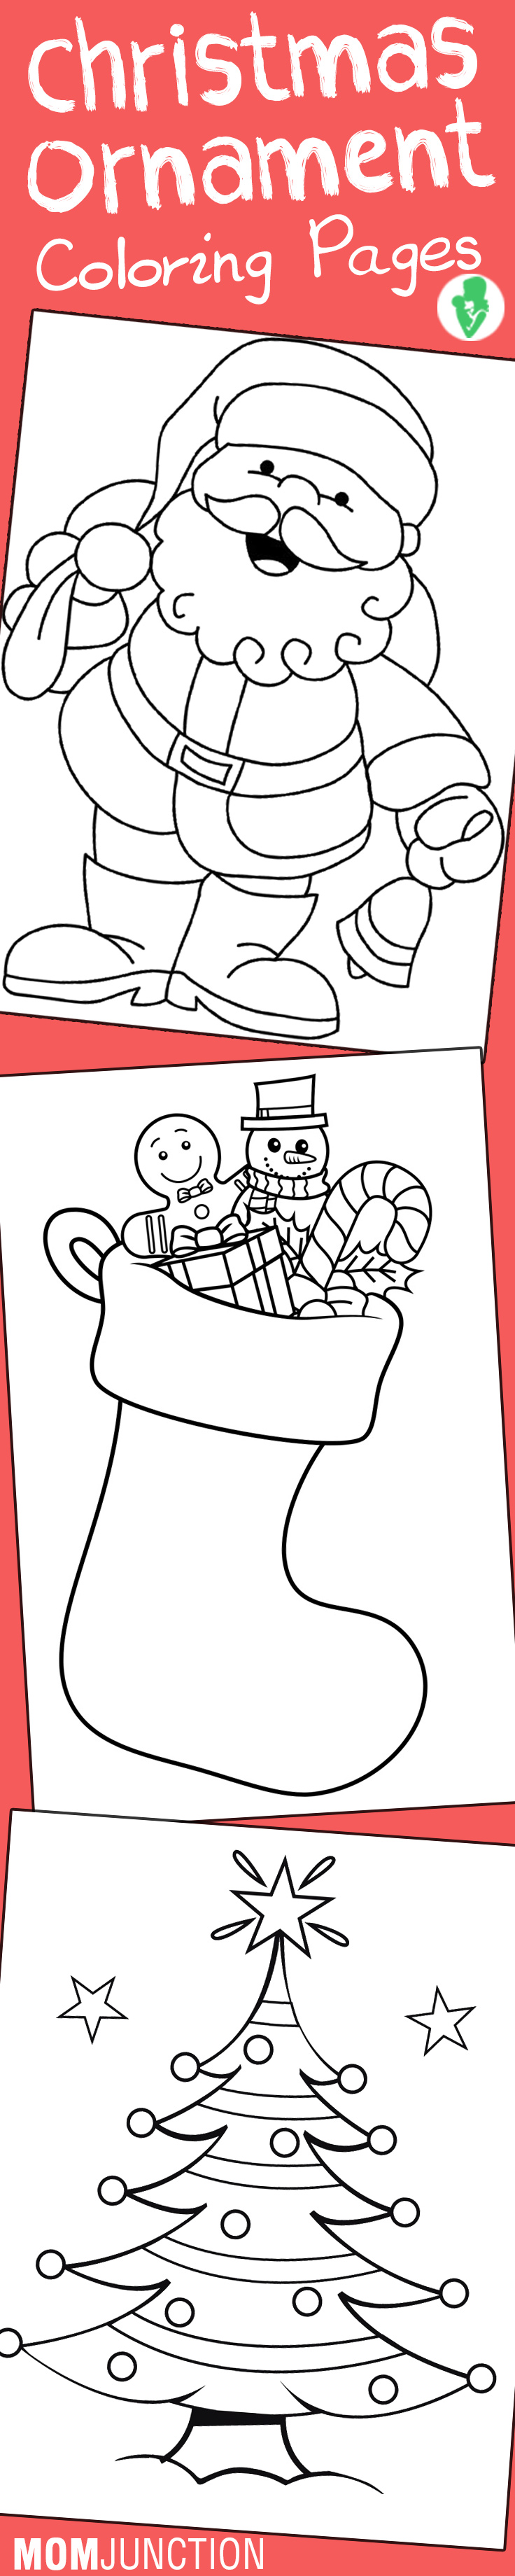 Christmas Coloring Pages Momjunction With Top 10 Free Printable Ornament Online